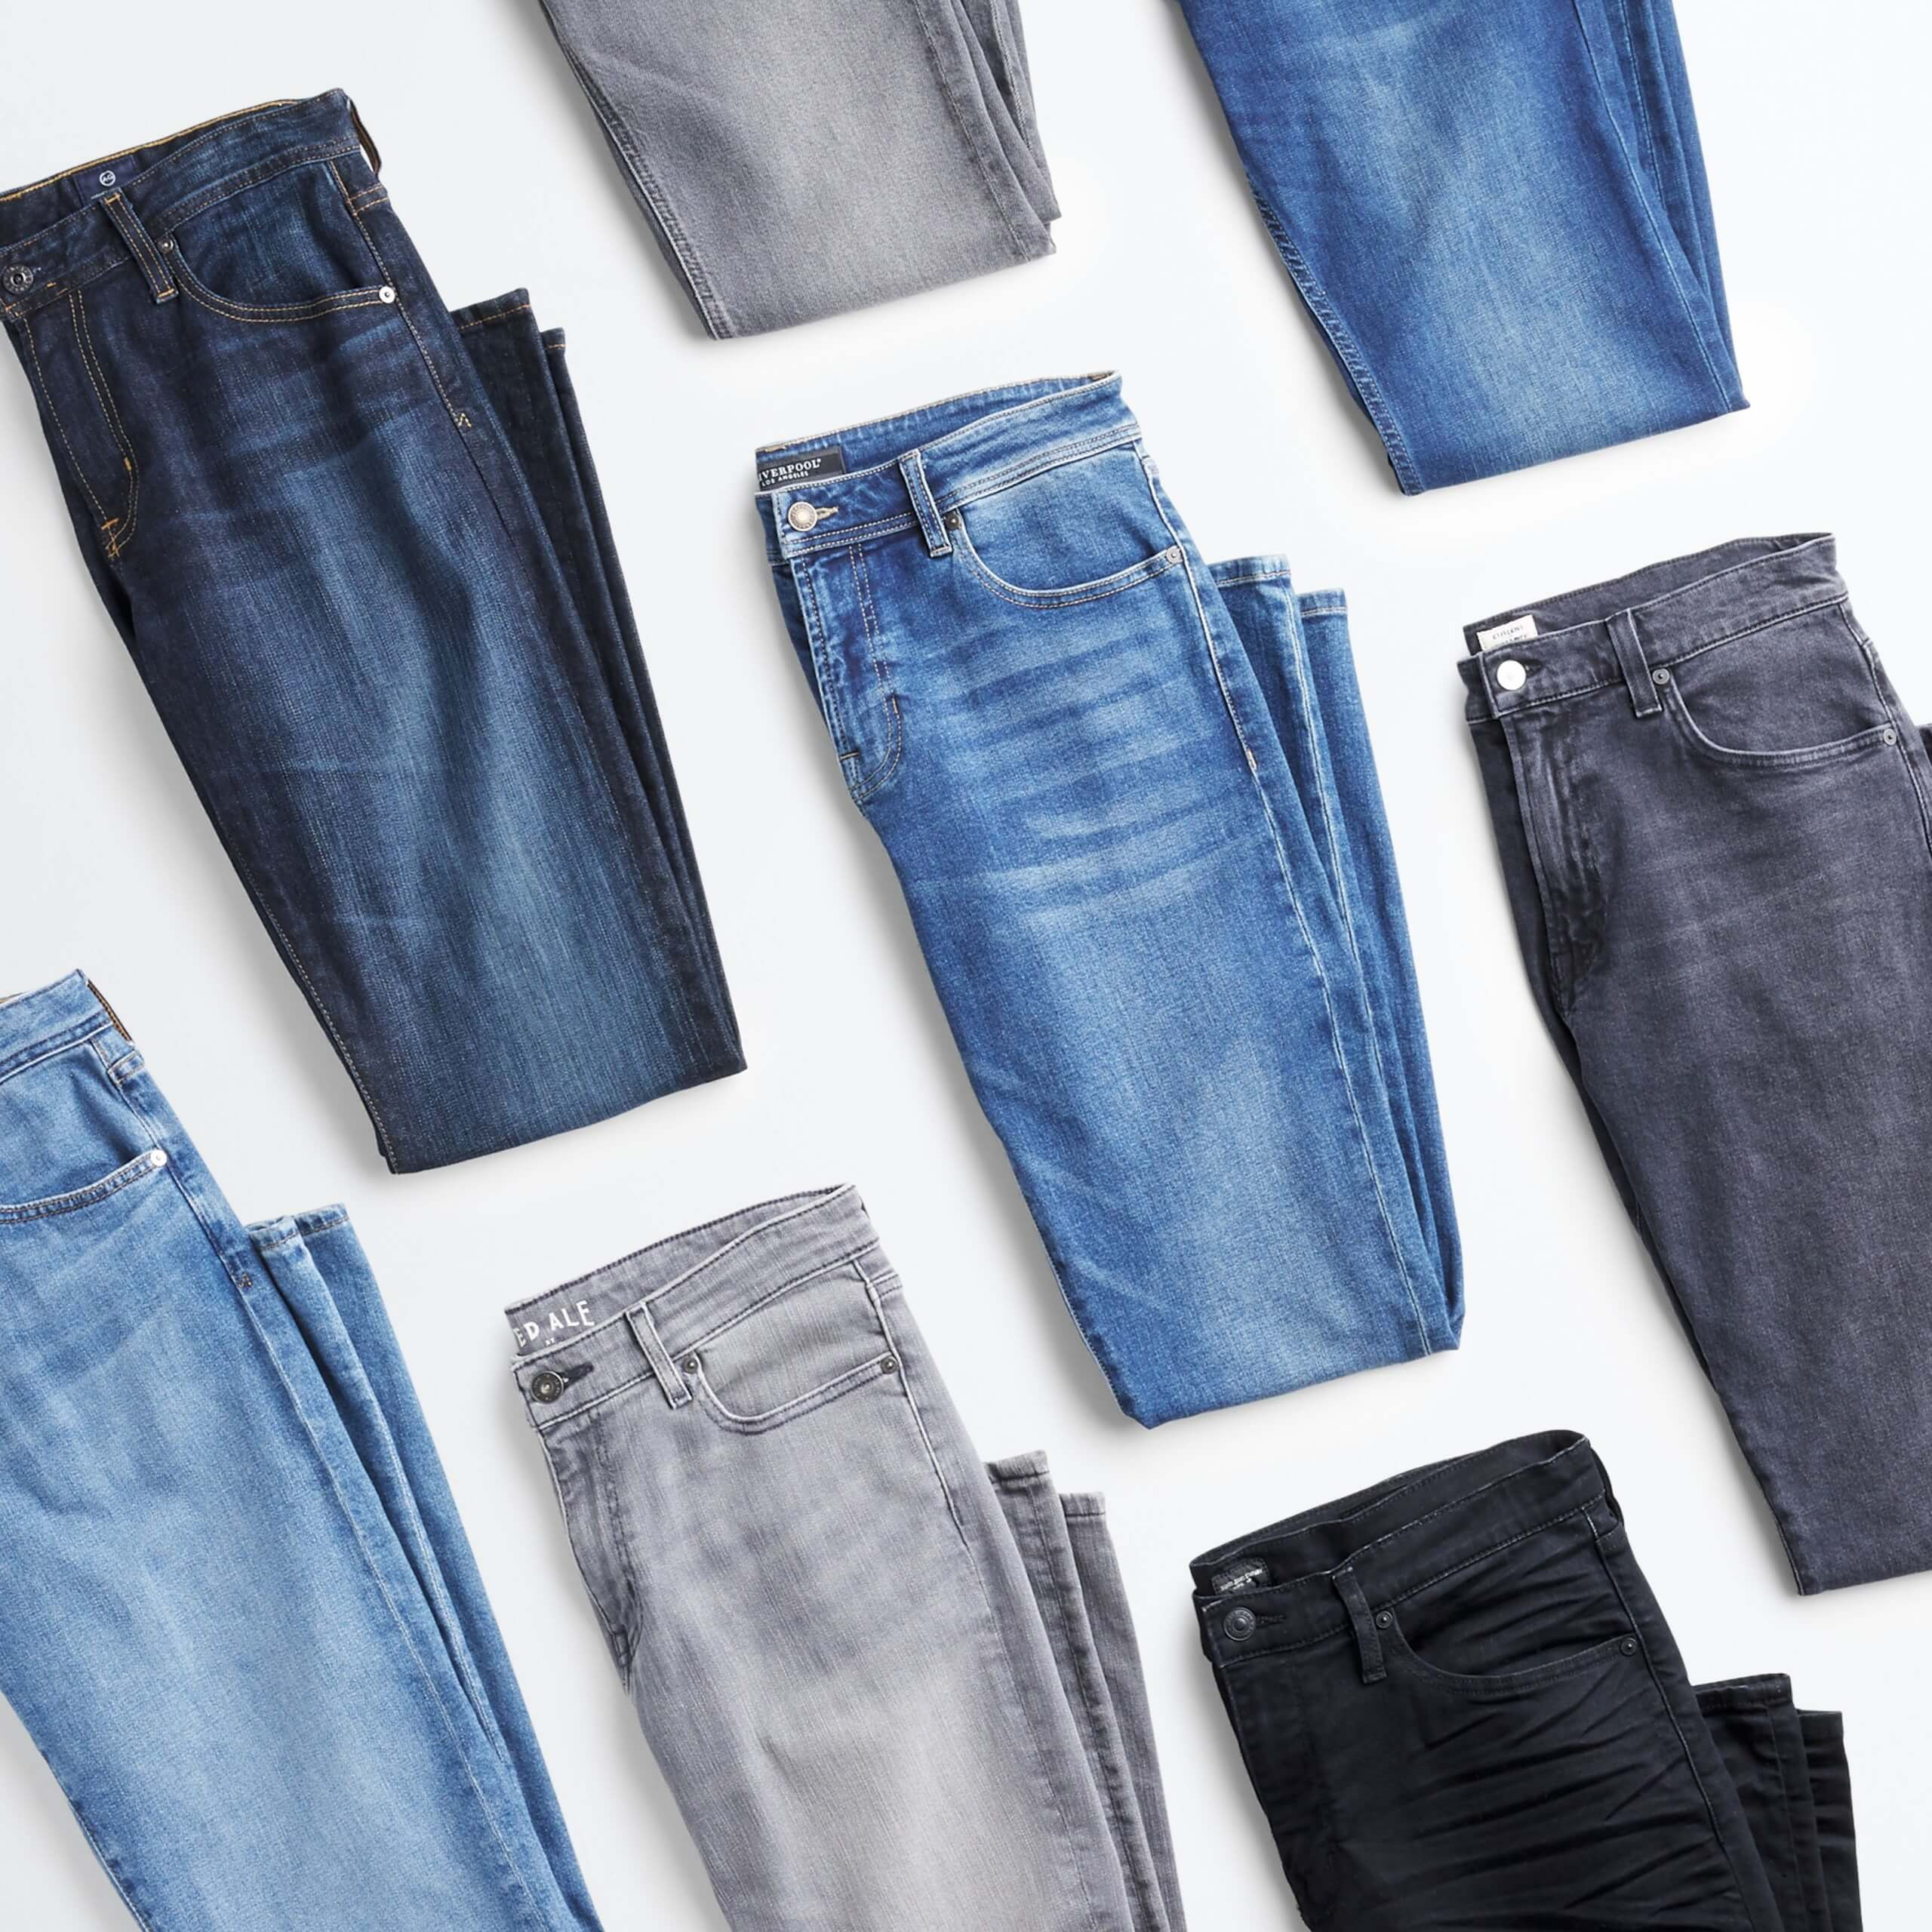 Stitch Fix Men's outfit laydown featuring jeans in dark blue wash, grey, black and light blue.